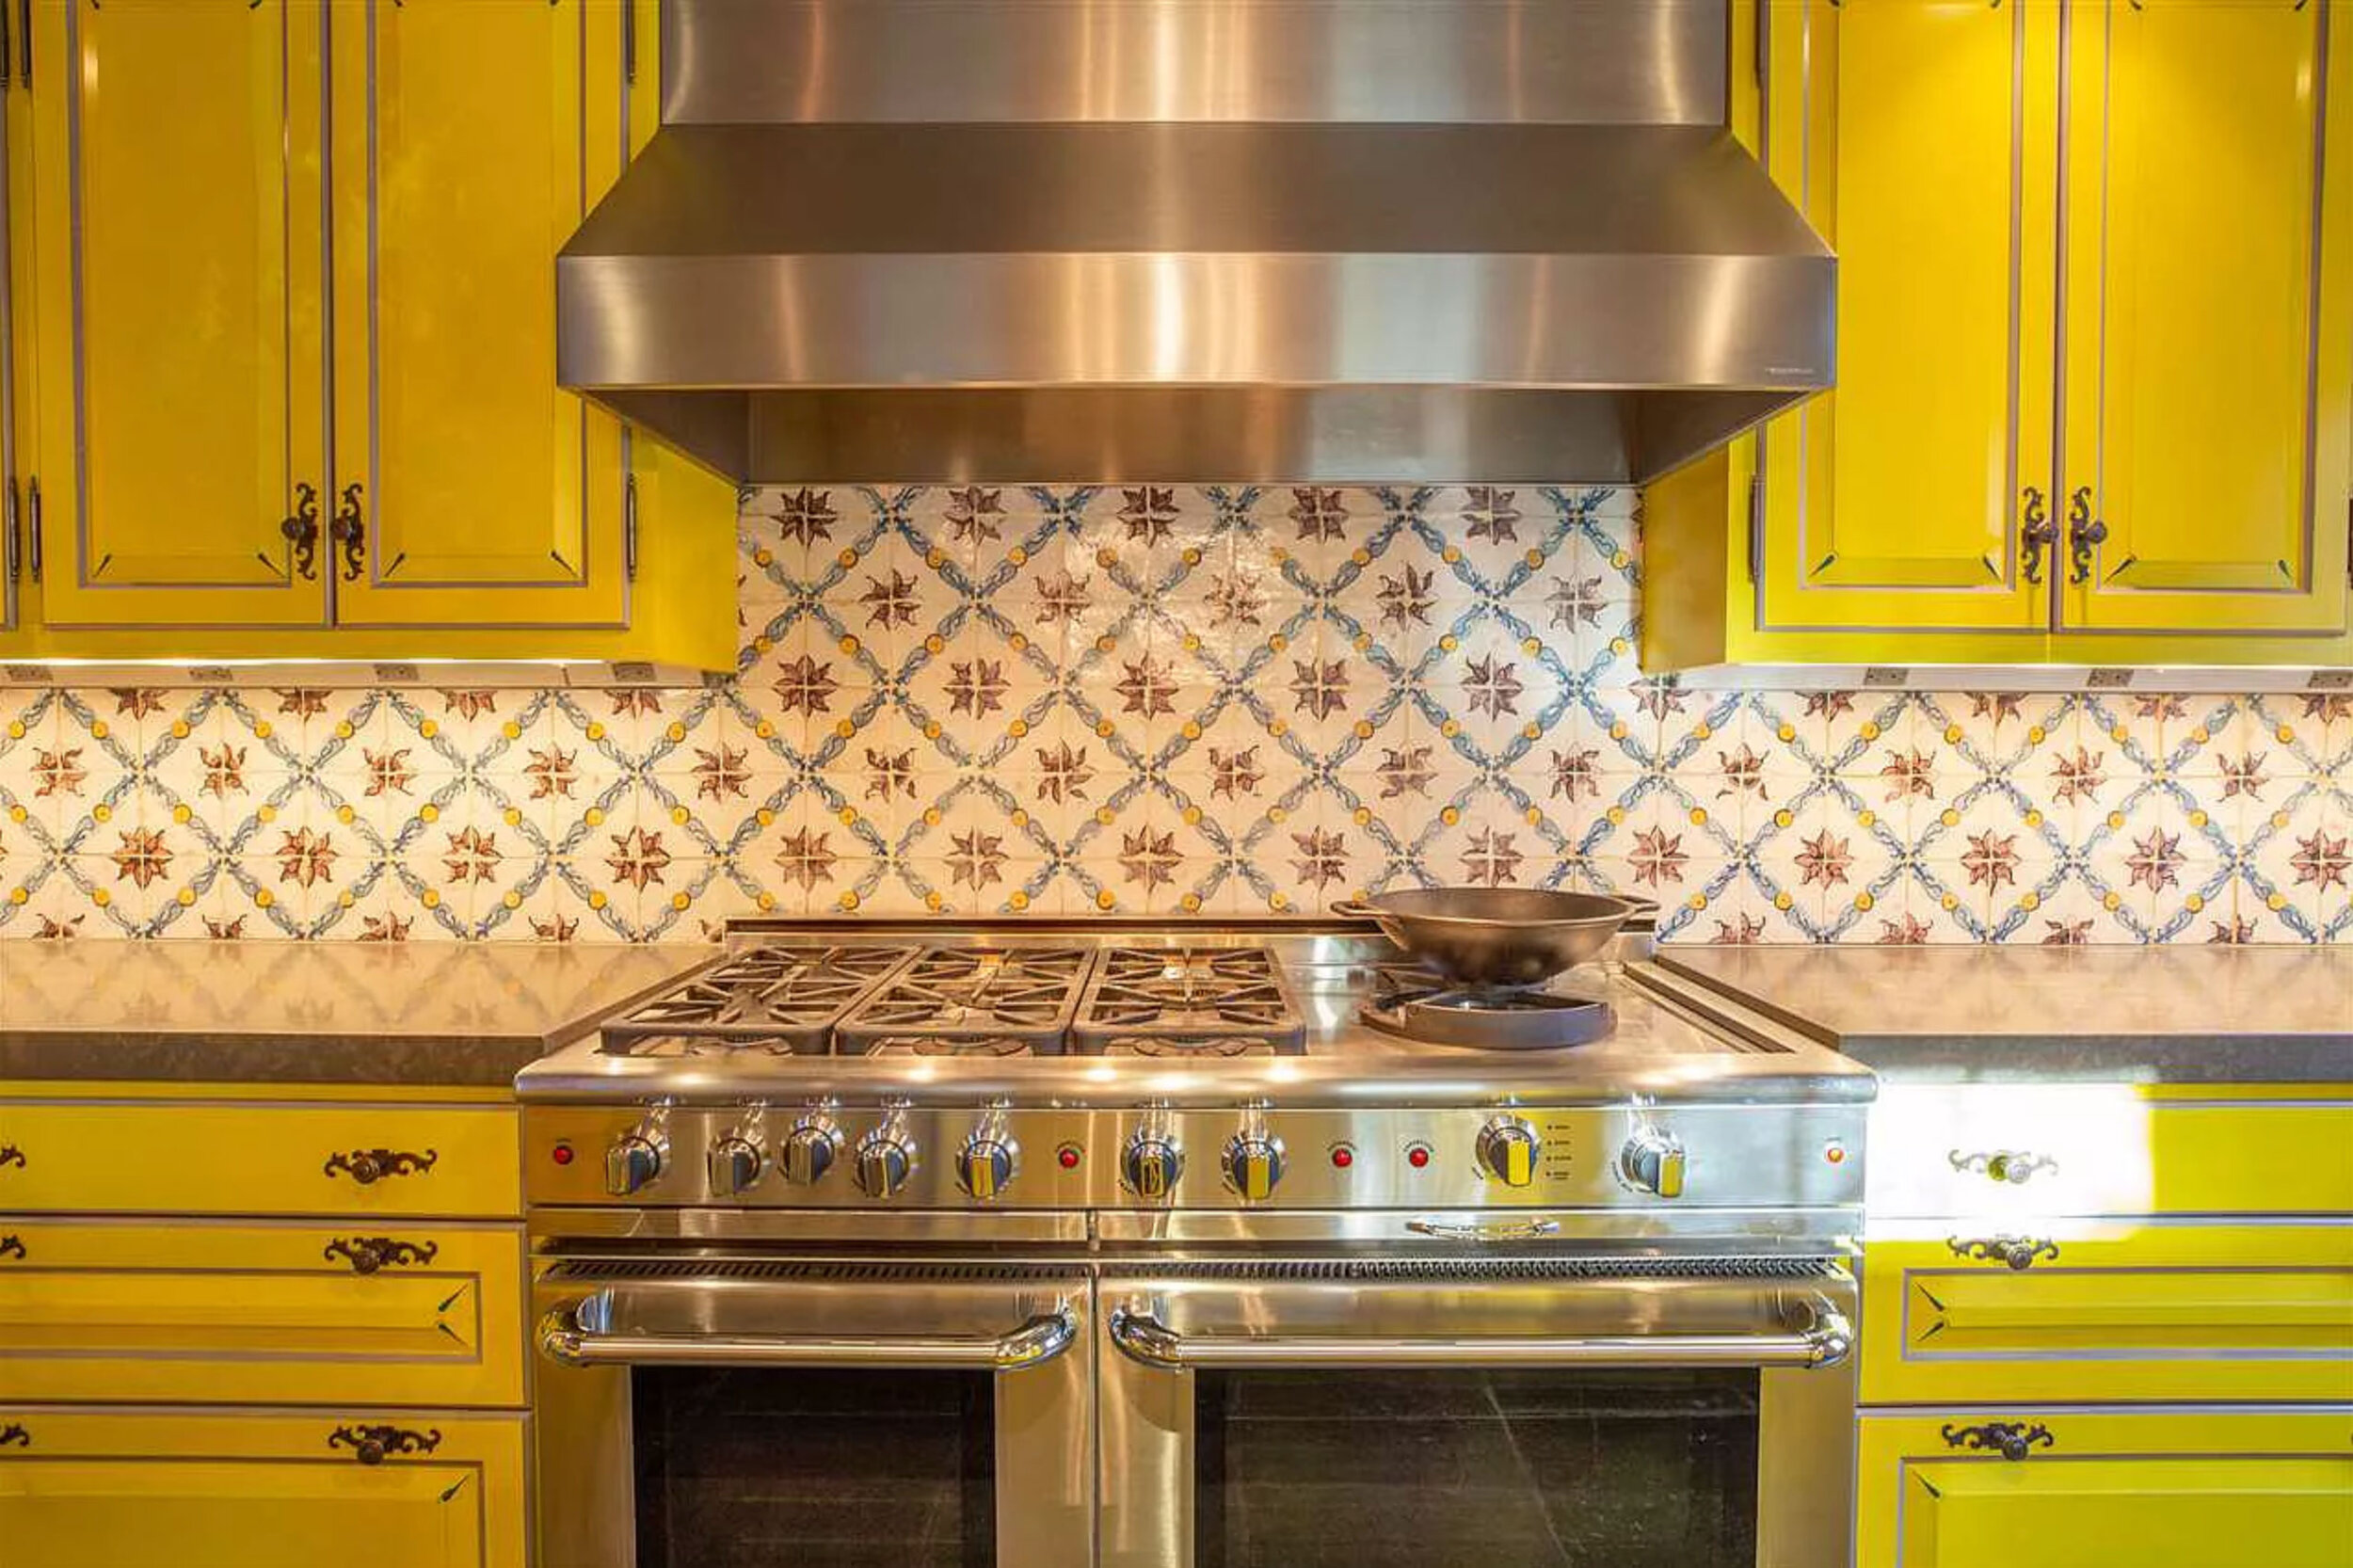 Portsmouth-Yellow-Kitchen-Backsplash.jpg